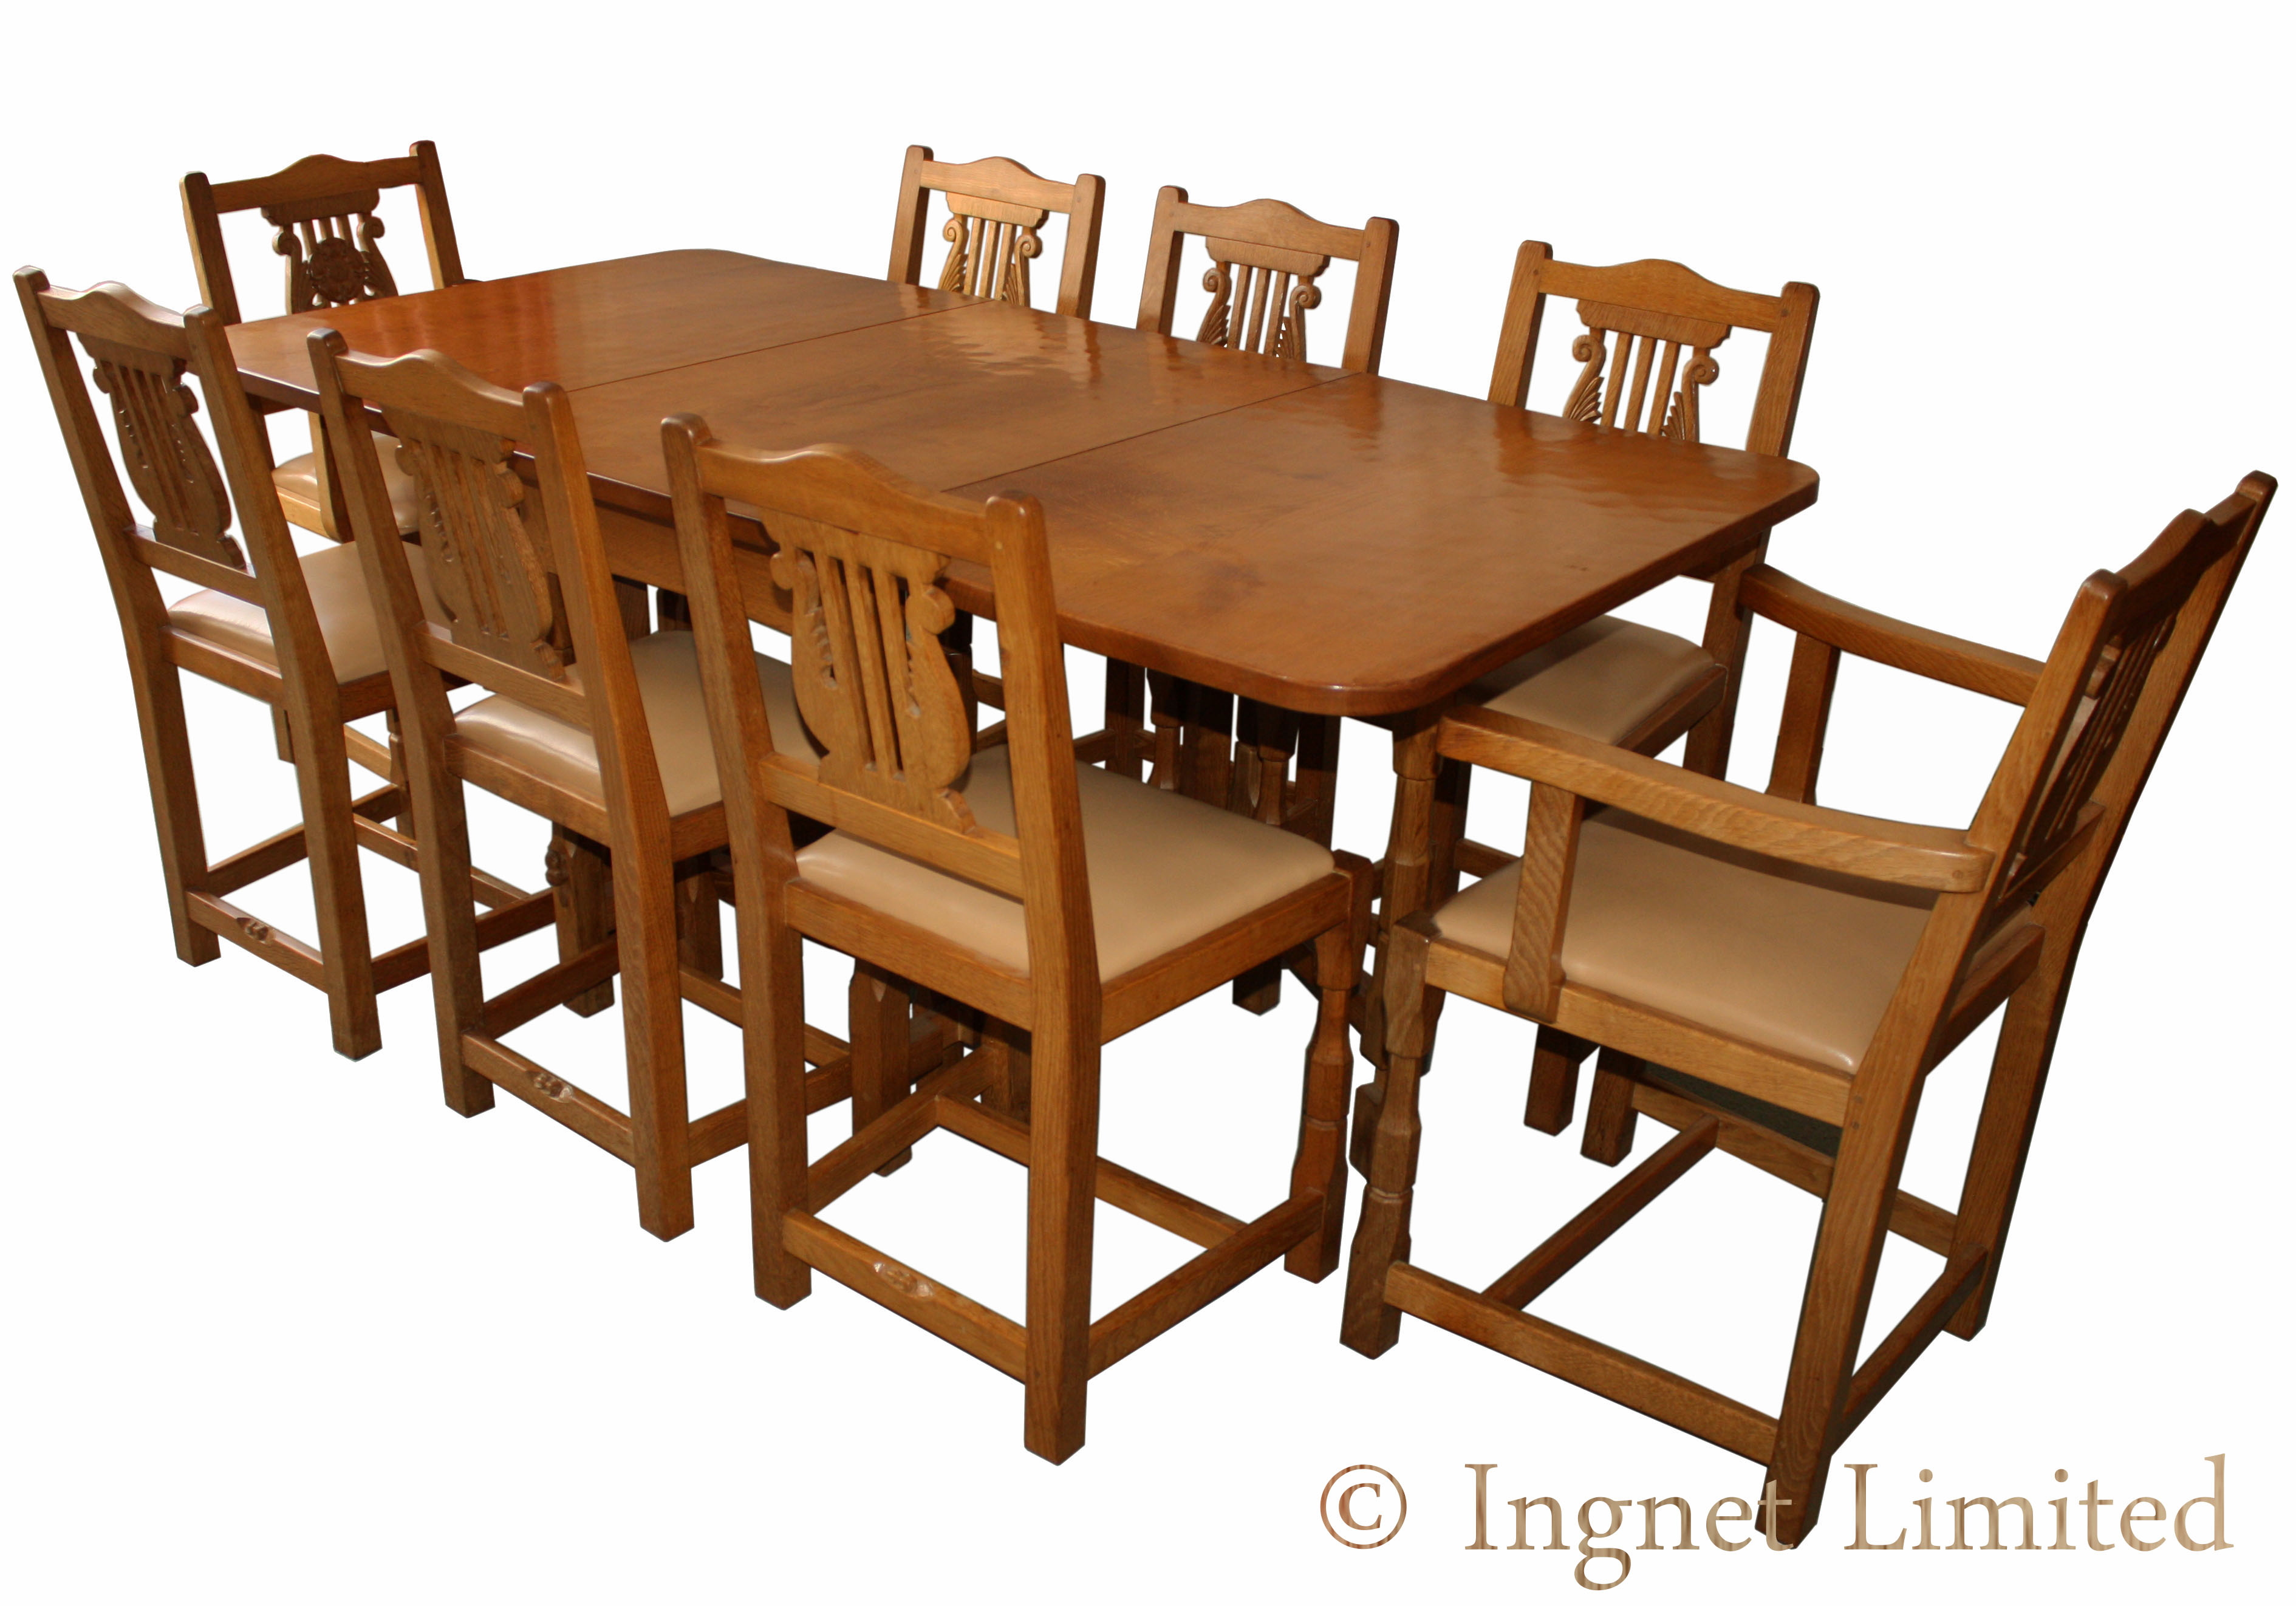 COLIN BEAVERMAN ALMACK ADZED OAK DINING TABLE WITH 8 CHAIRS Ingnet